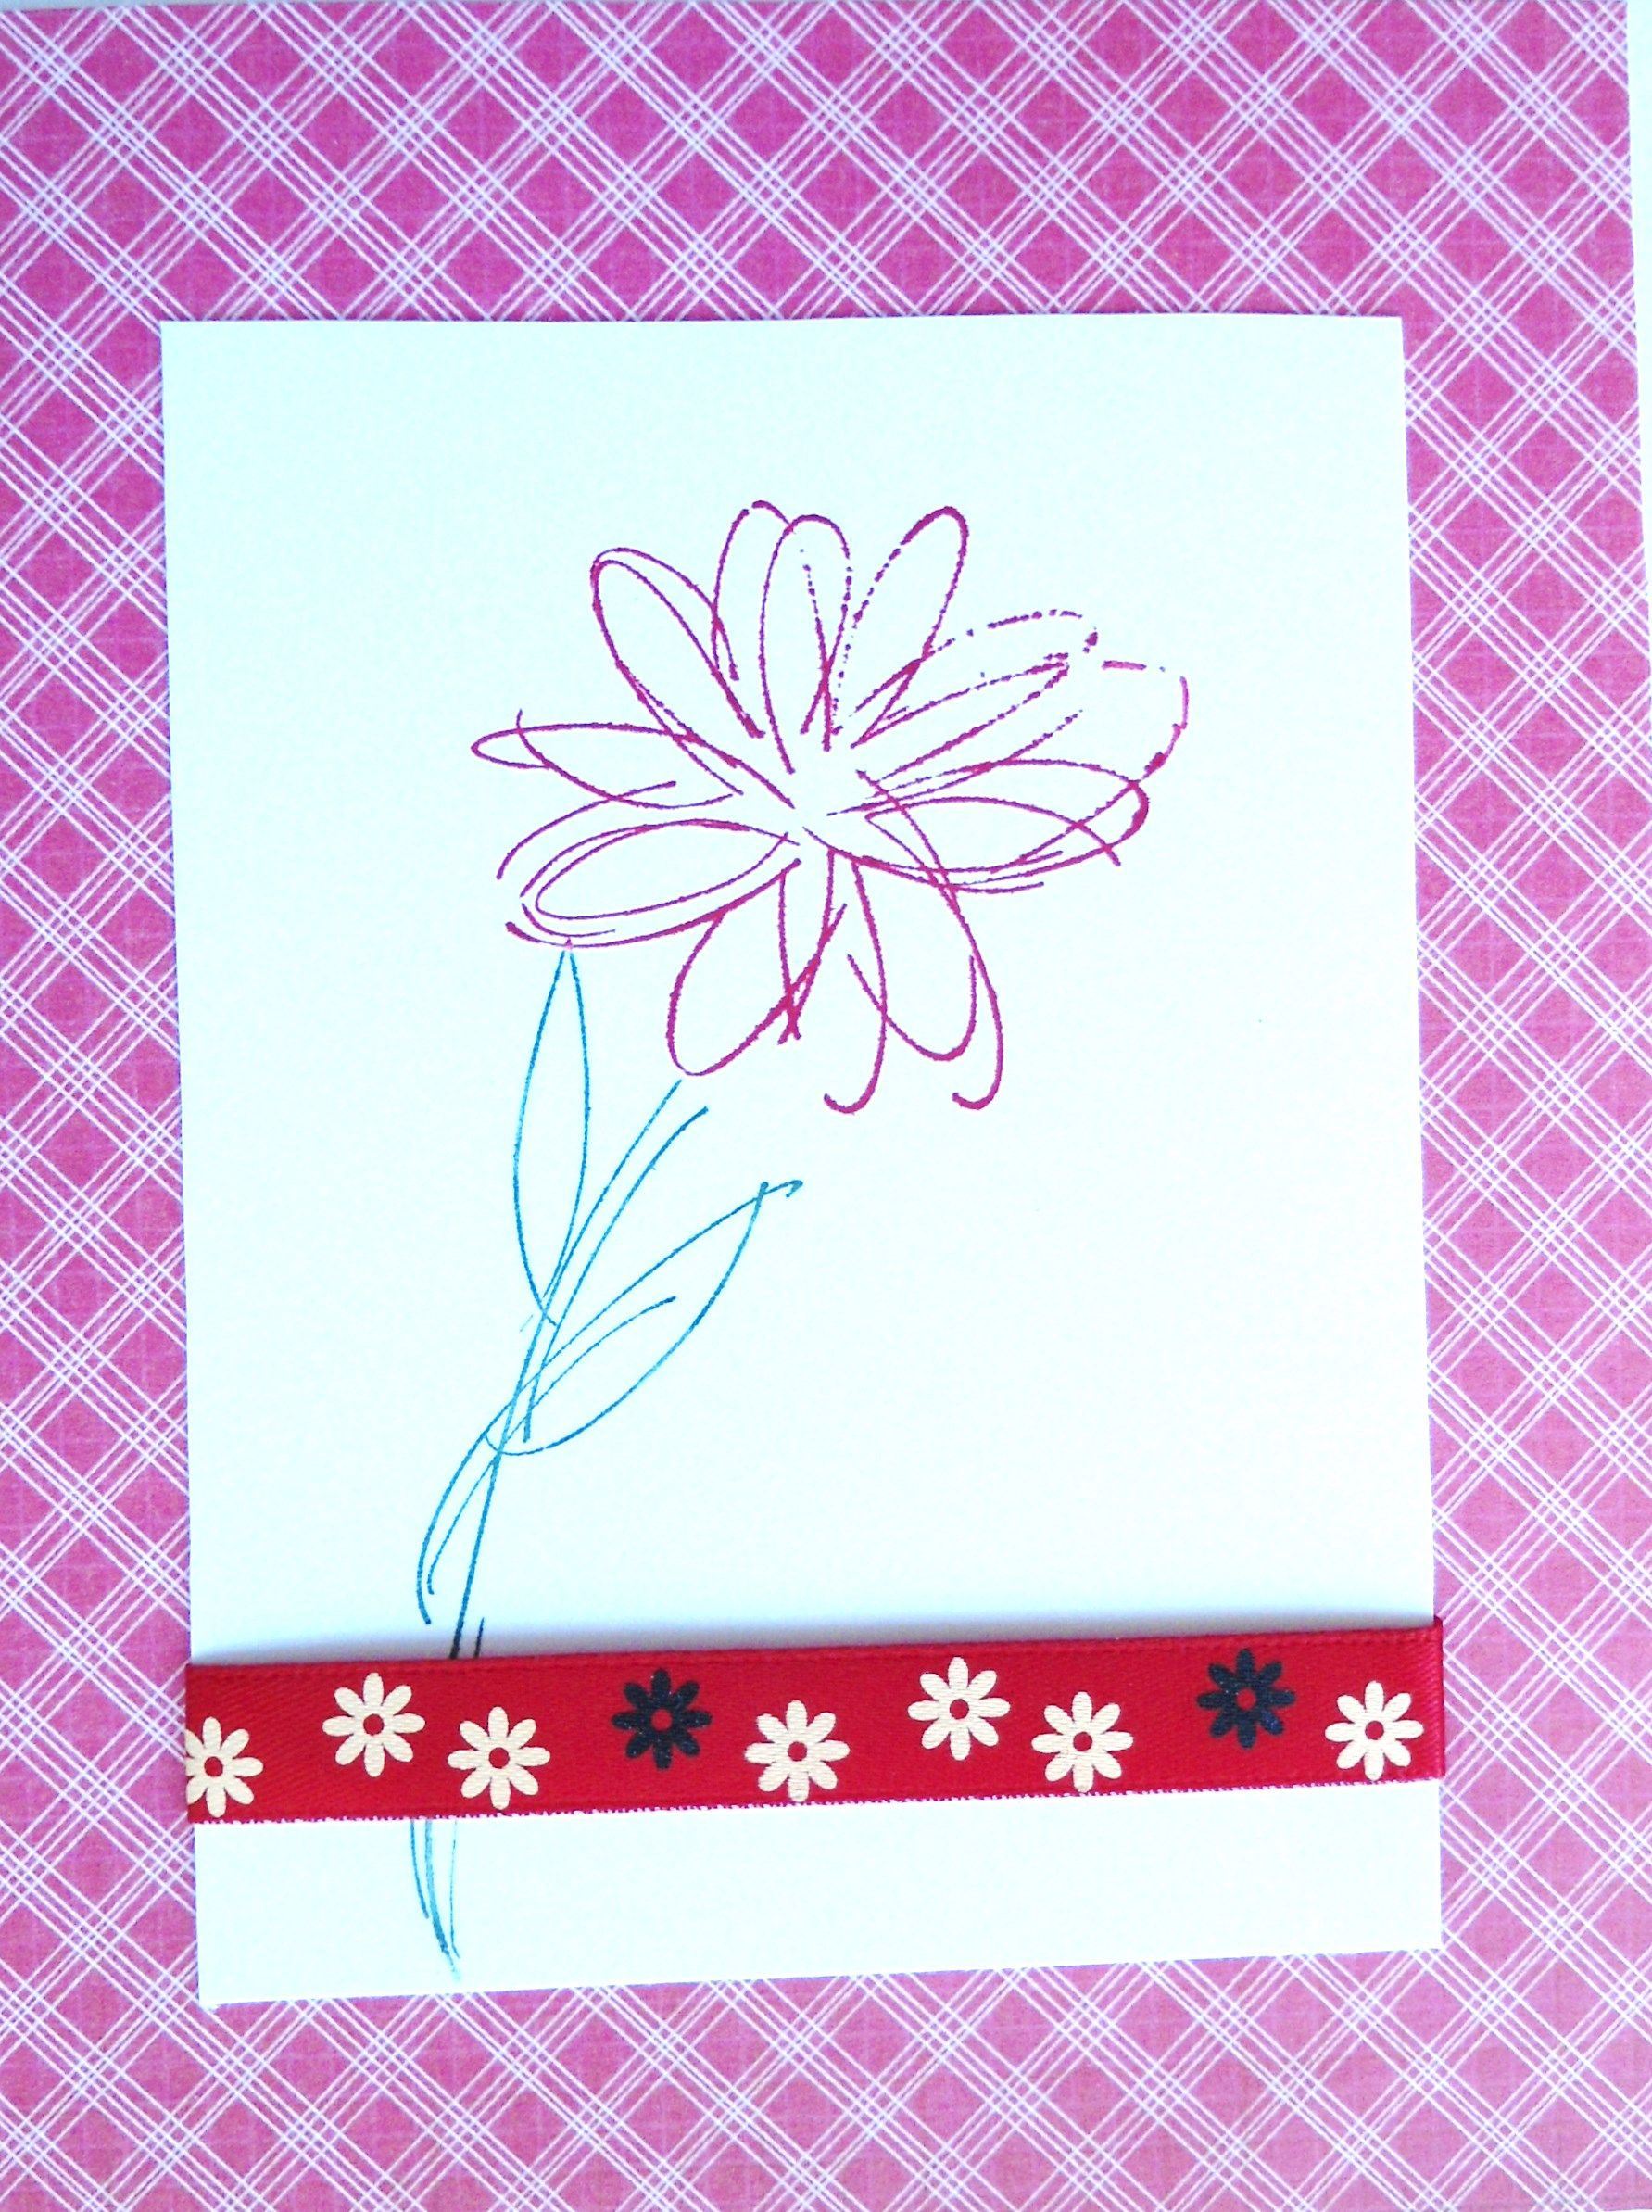 I Cut A Piece Of Plaid Paper To Just Fit The Front Of The Card Then